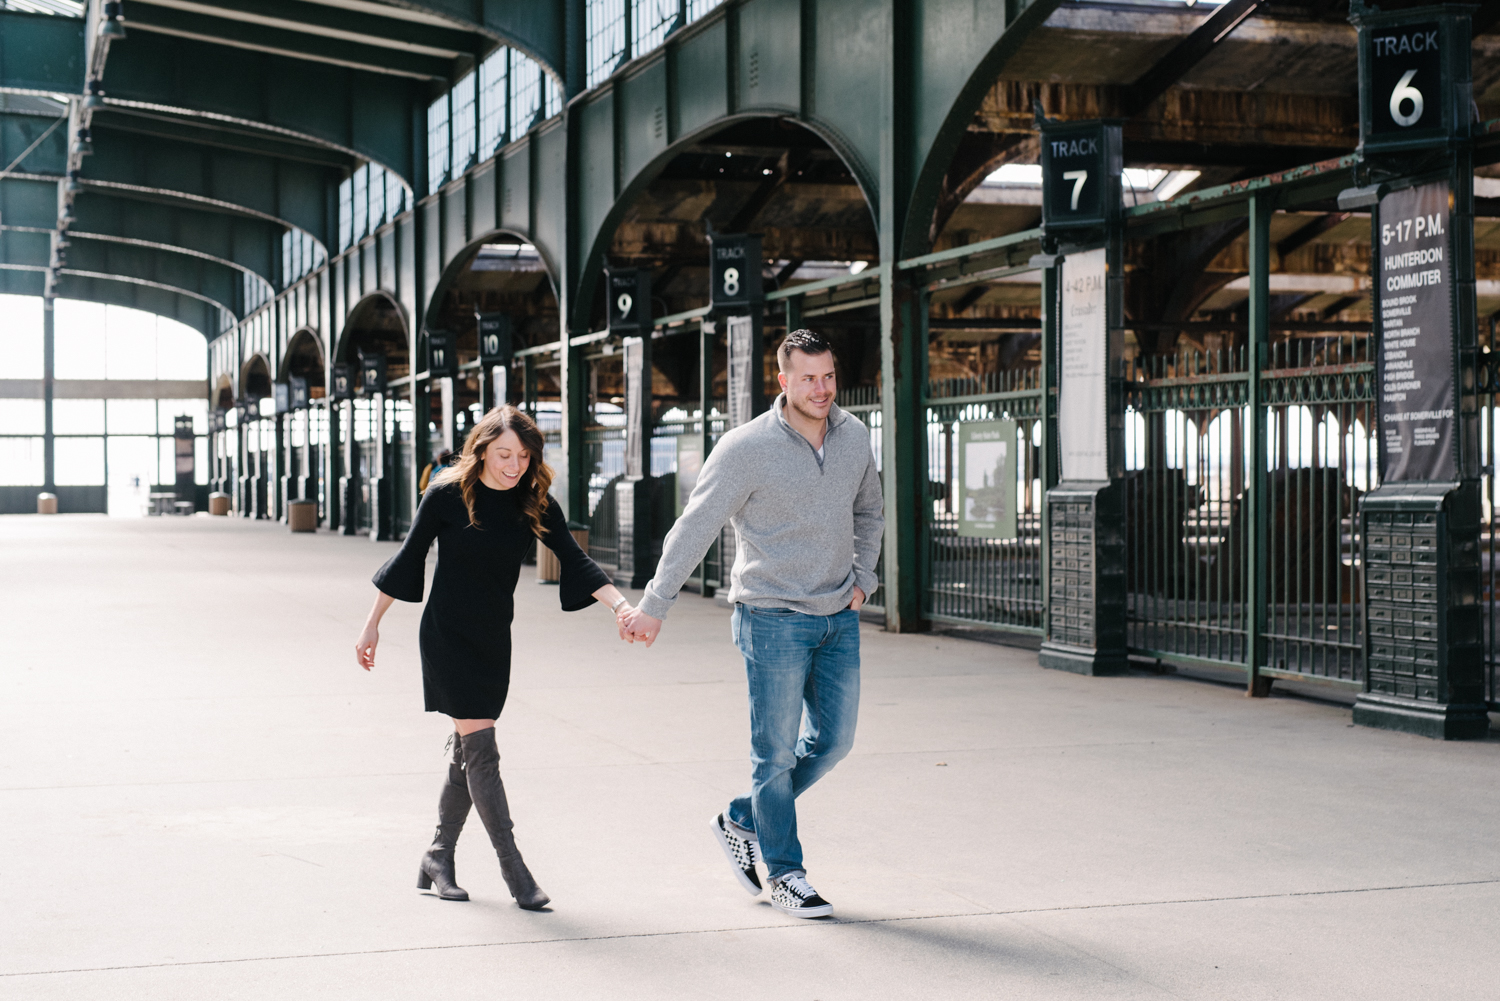 Liberty State Park Engagement Session- Danielle + Joe- New Jersey- Olivia Christina Photo-166.jpg